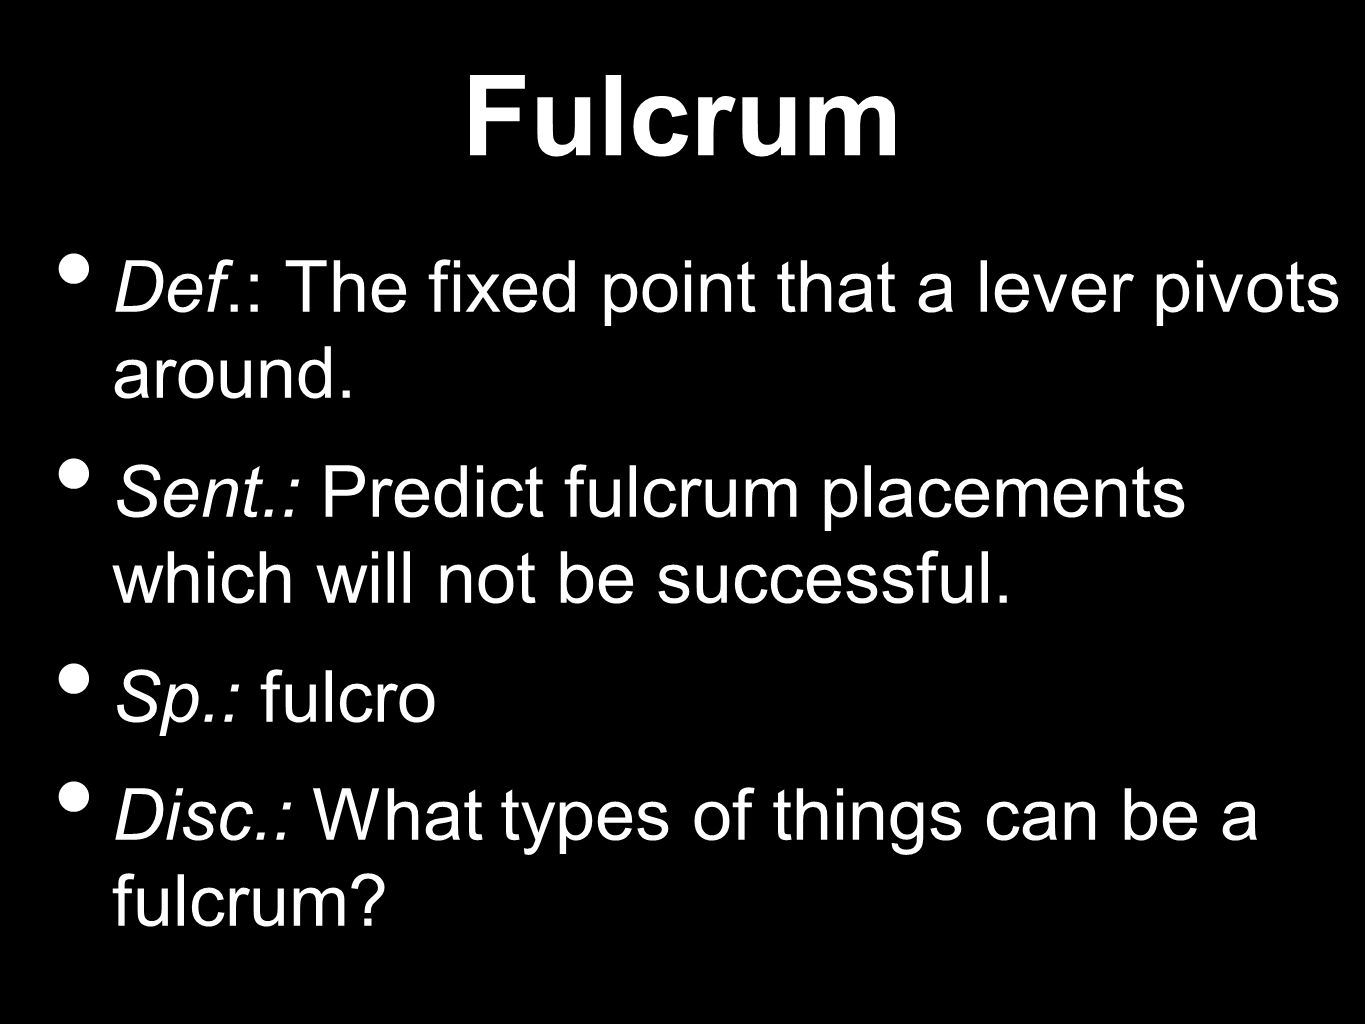 Fulcrum Def.: The fixed point that a lever pivots around.